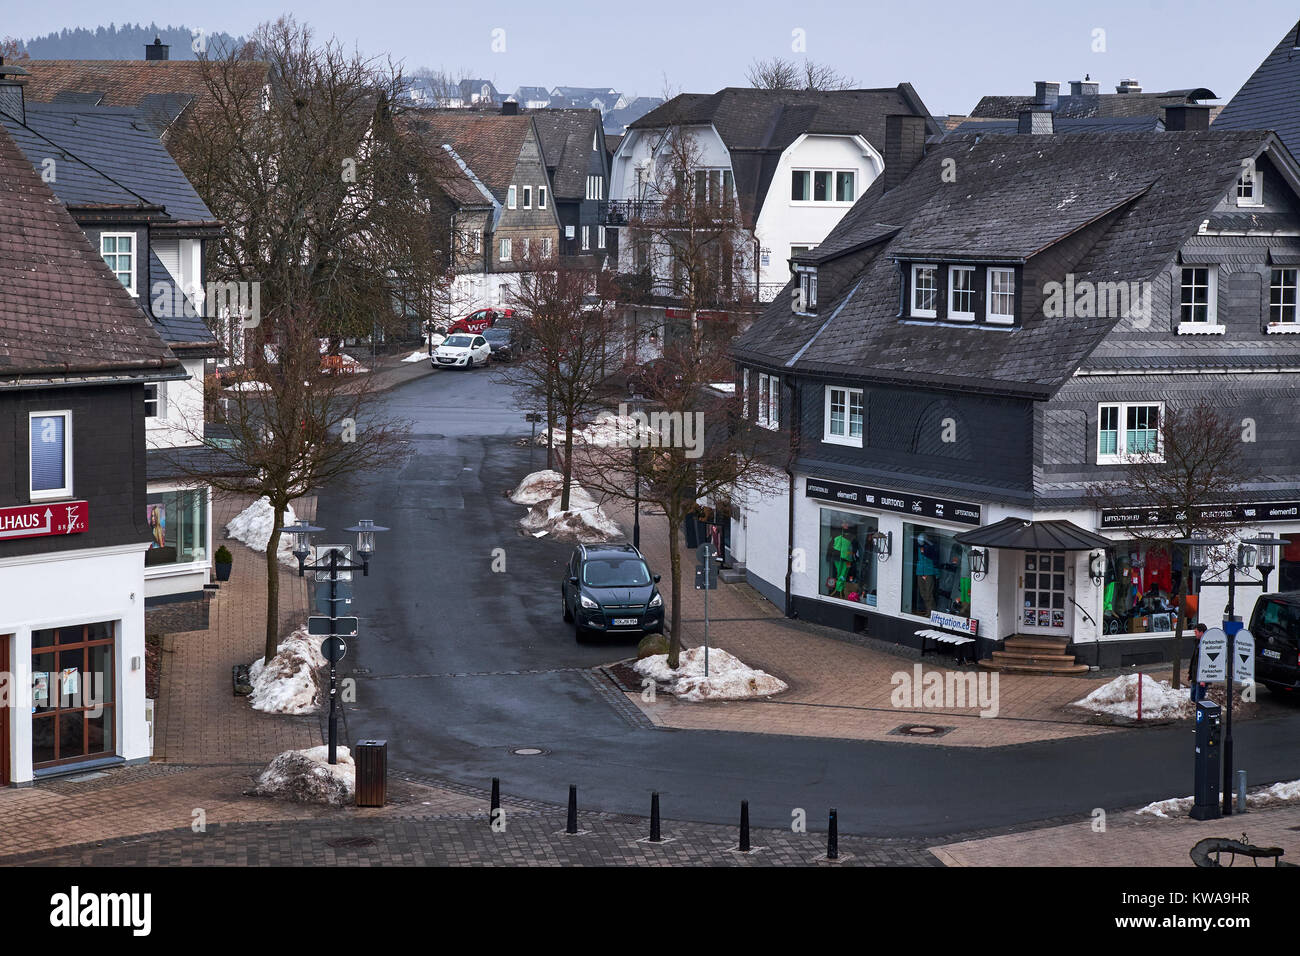 WINTERBERG, GERMANY - FEBRUARY 16, 2017: Narrow street in Winterberg with slate decorated town villas on both sides - Stock Image